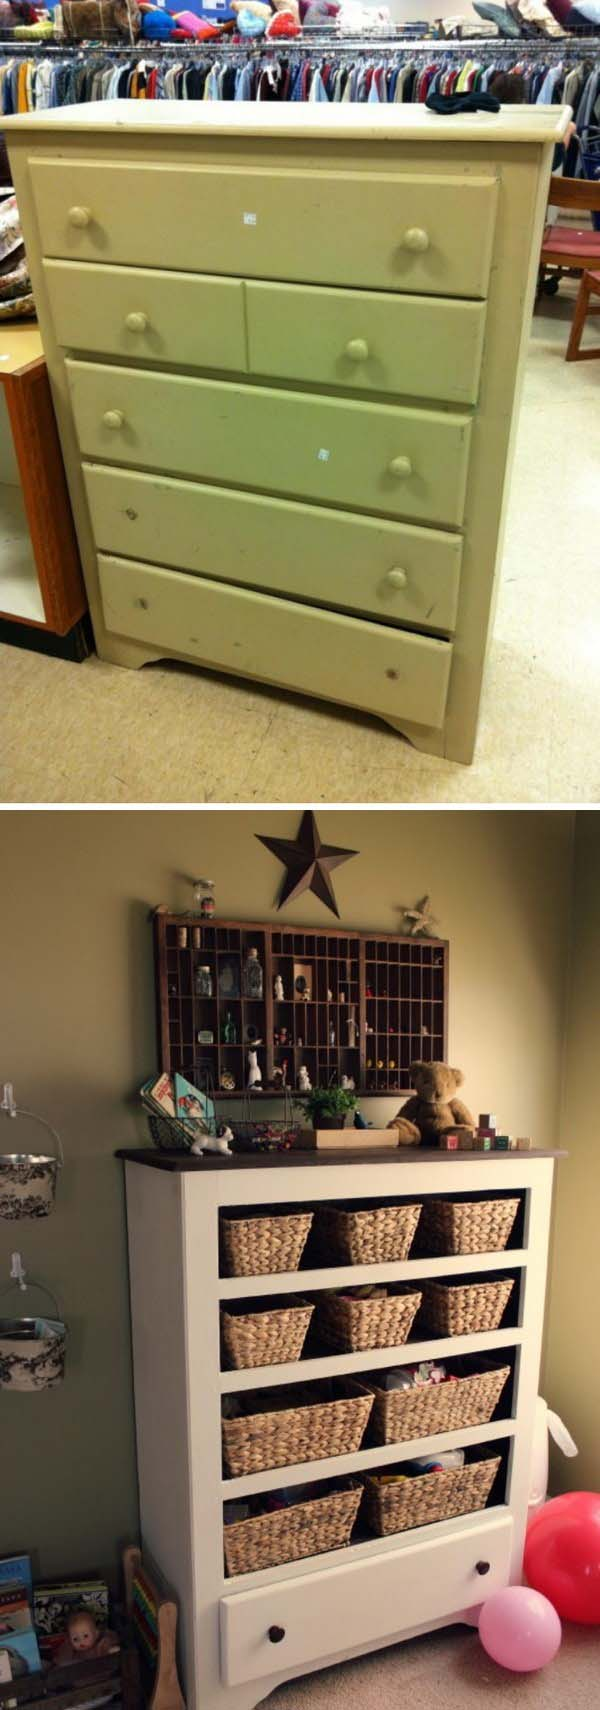 DIY Old Dresser Into Storage #diy #furniture #makeover #repurpose #decorhomeideas